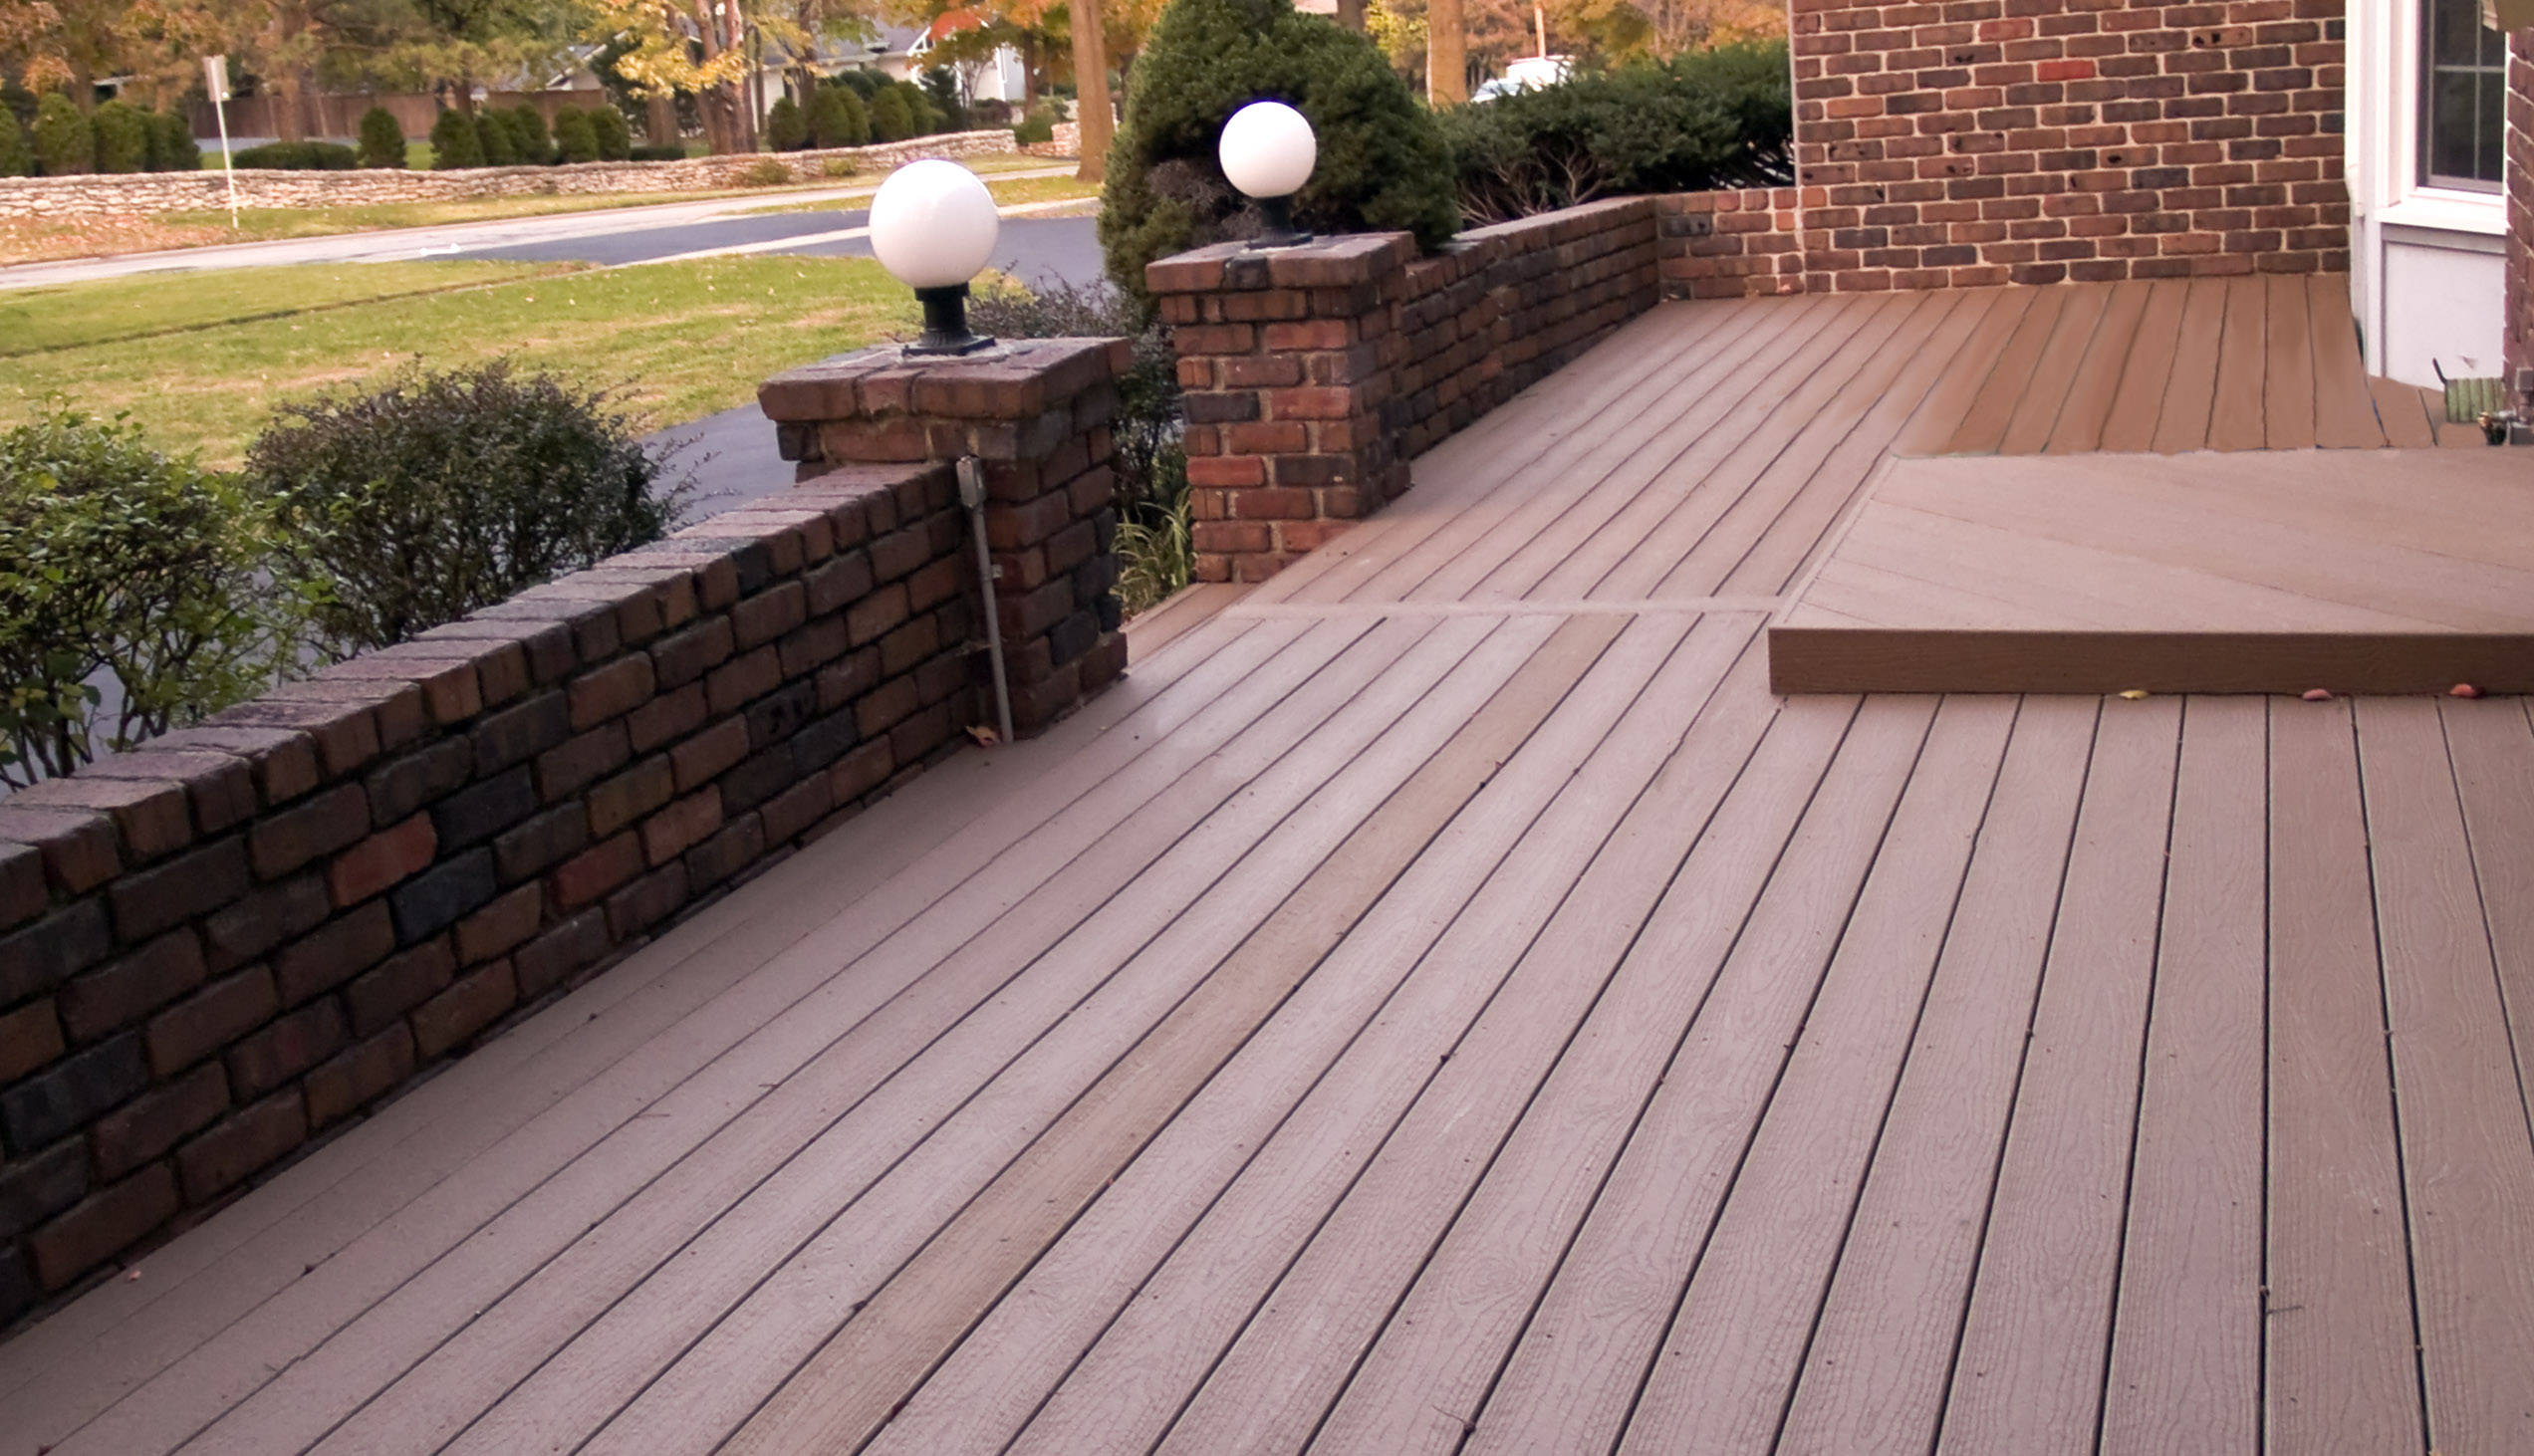 moccasin evergrain decking matched with brick railing plus double lights ideas